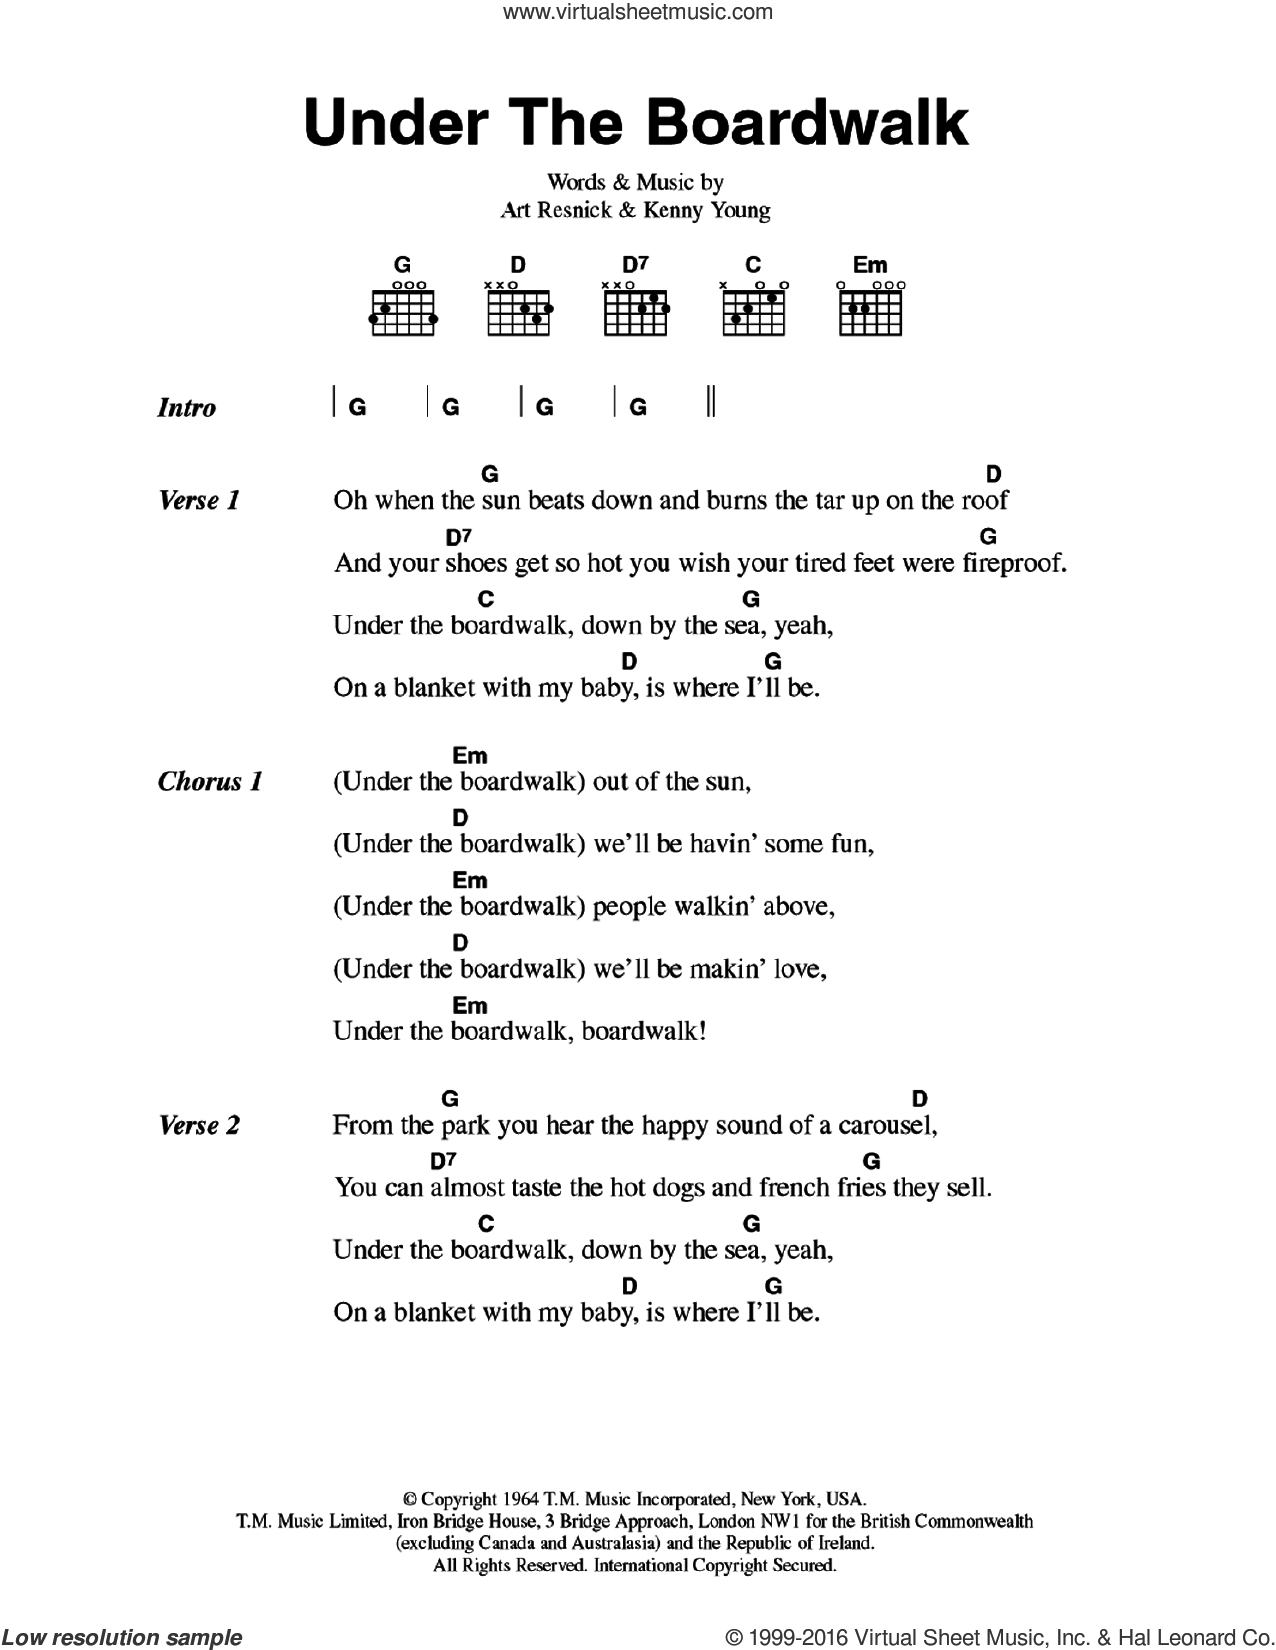 Under The Boardwalk sheet music for guitar (chords) by The Drifters, Art Resnick and Kenny Young, intermediate skill level